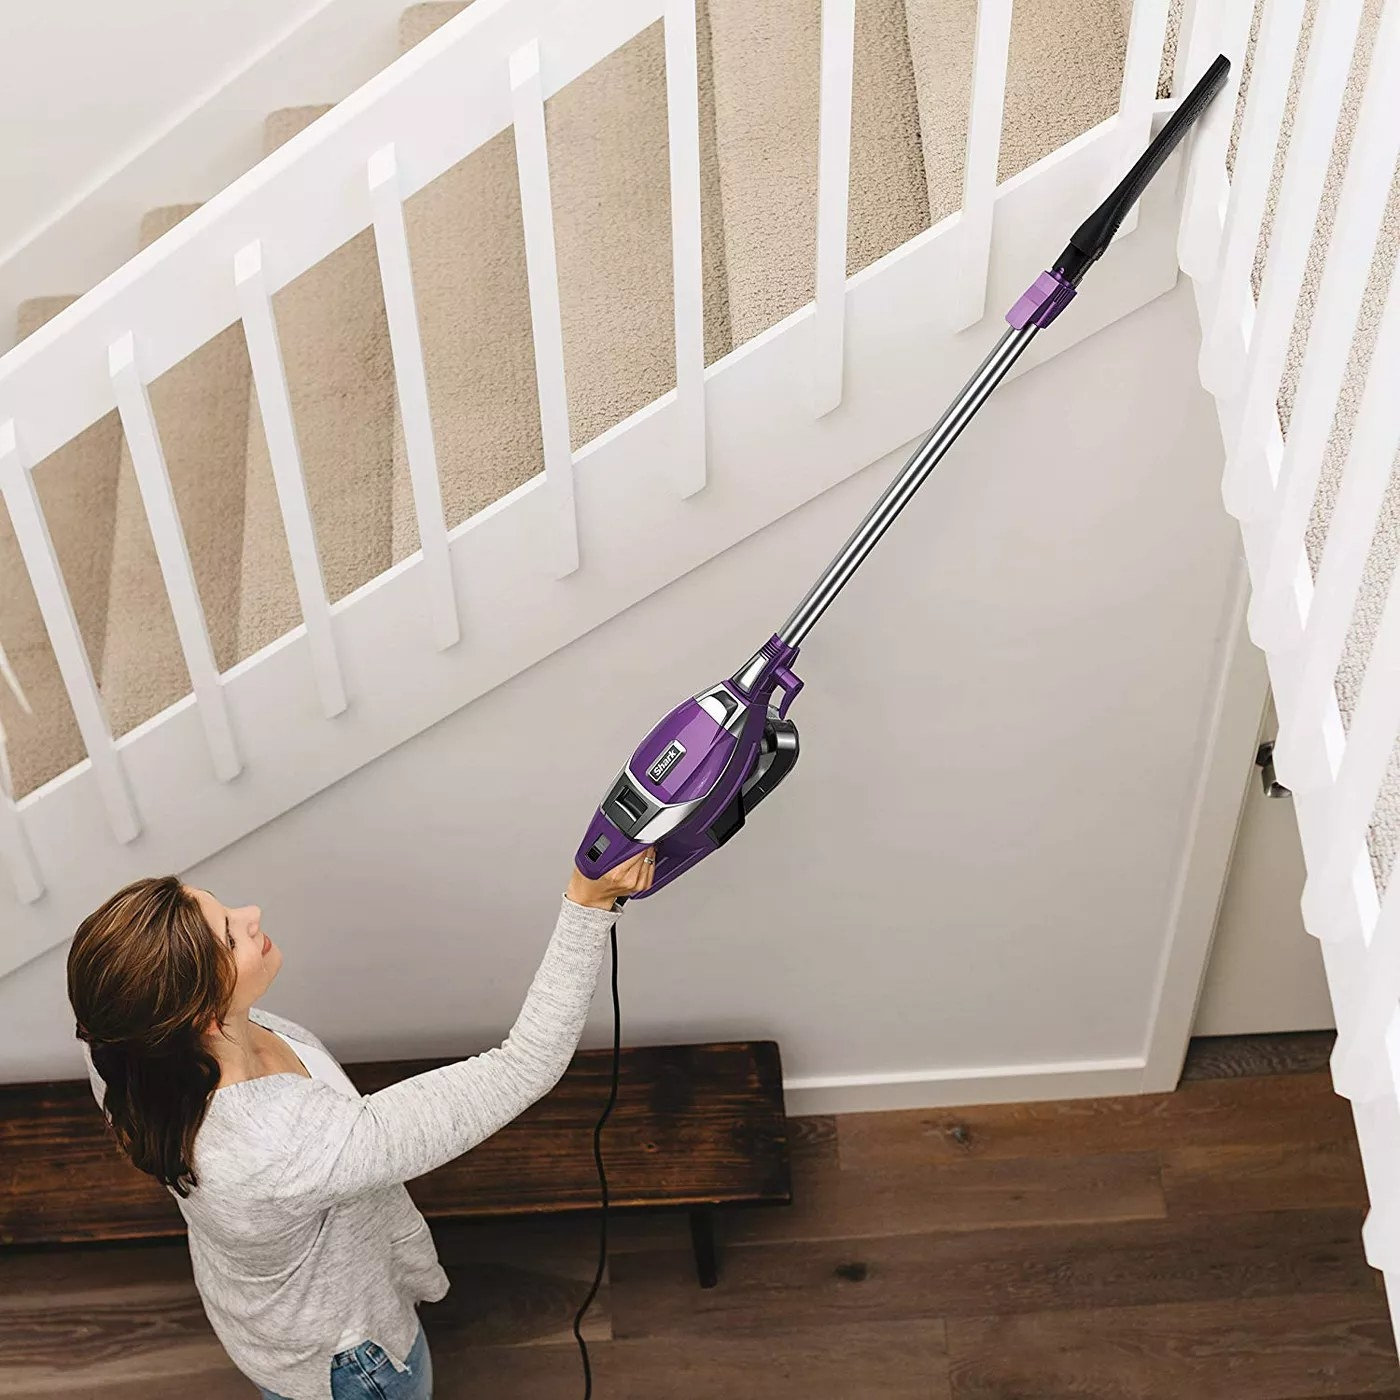 A model using the stick vacuum to clean the top of some stairs